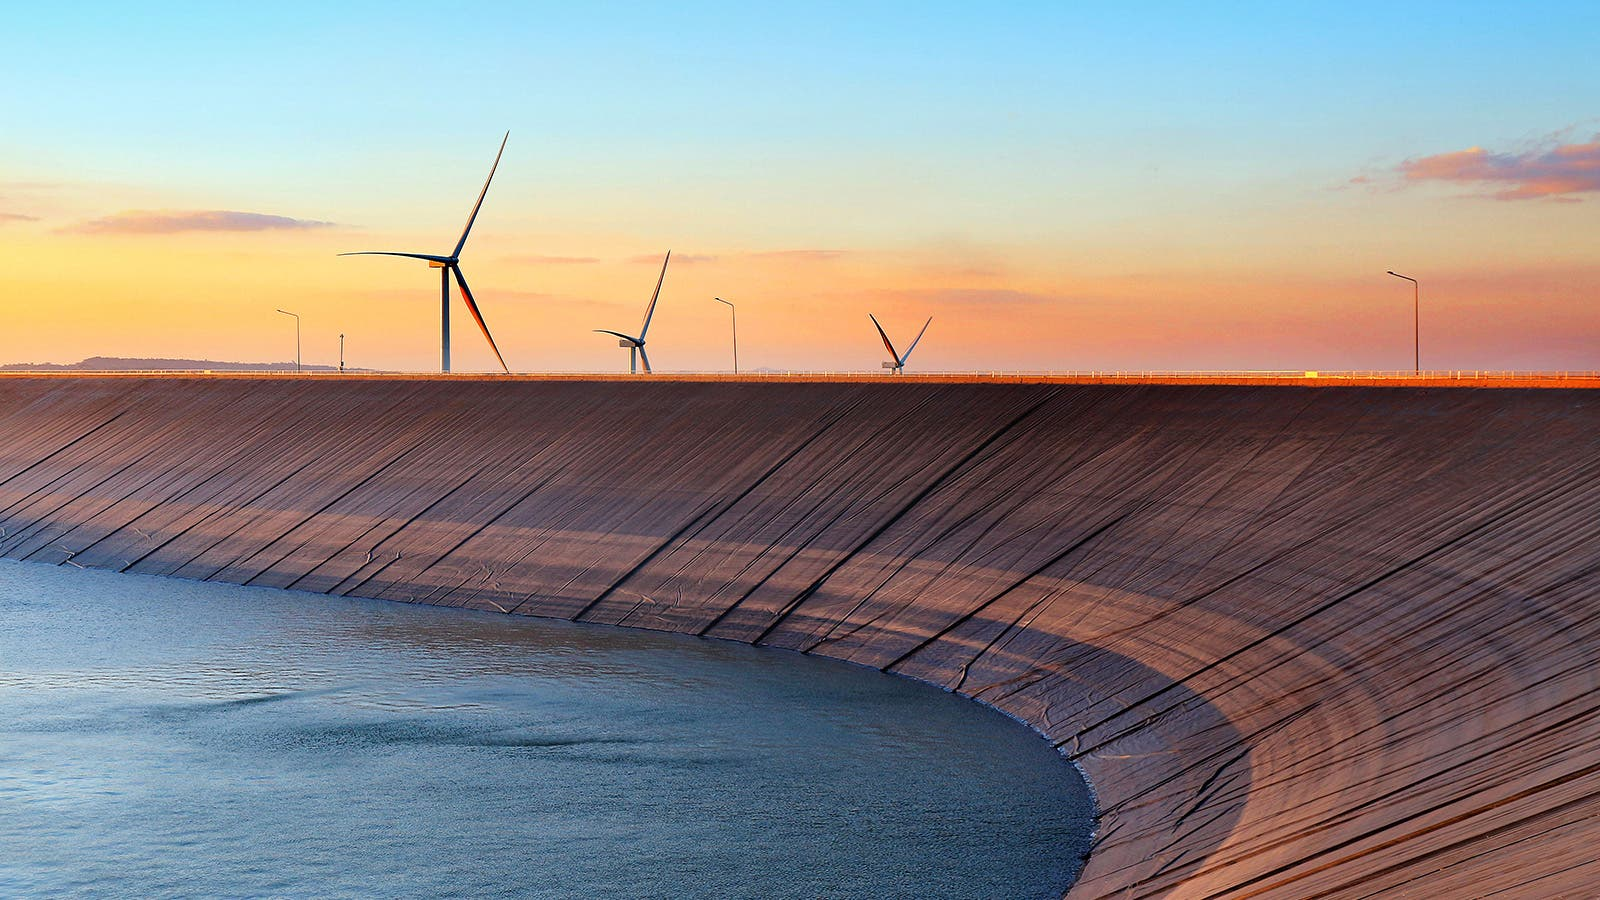 Pumped storage with wind turbines in background